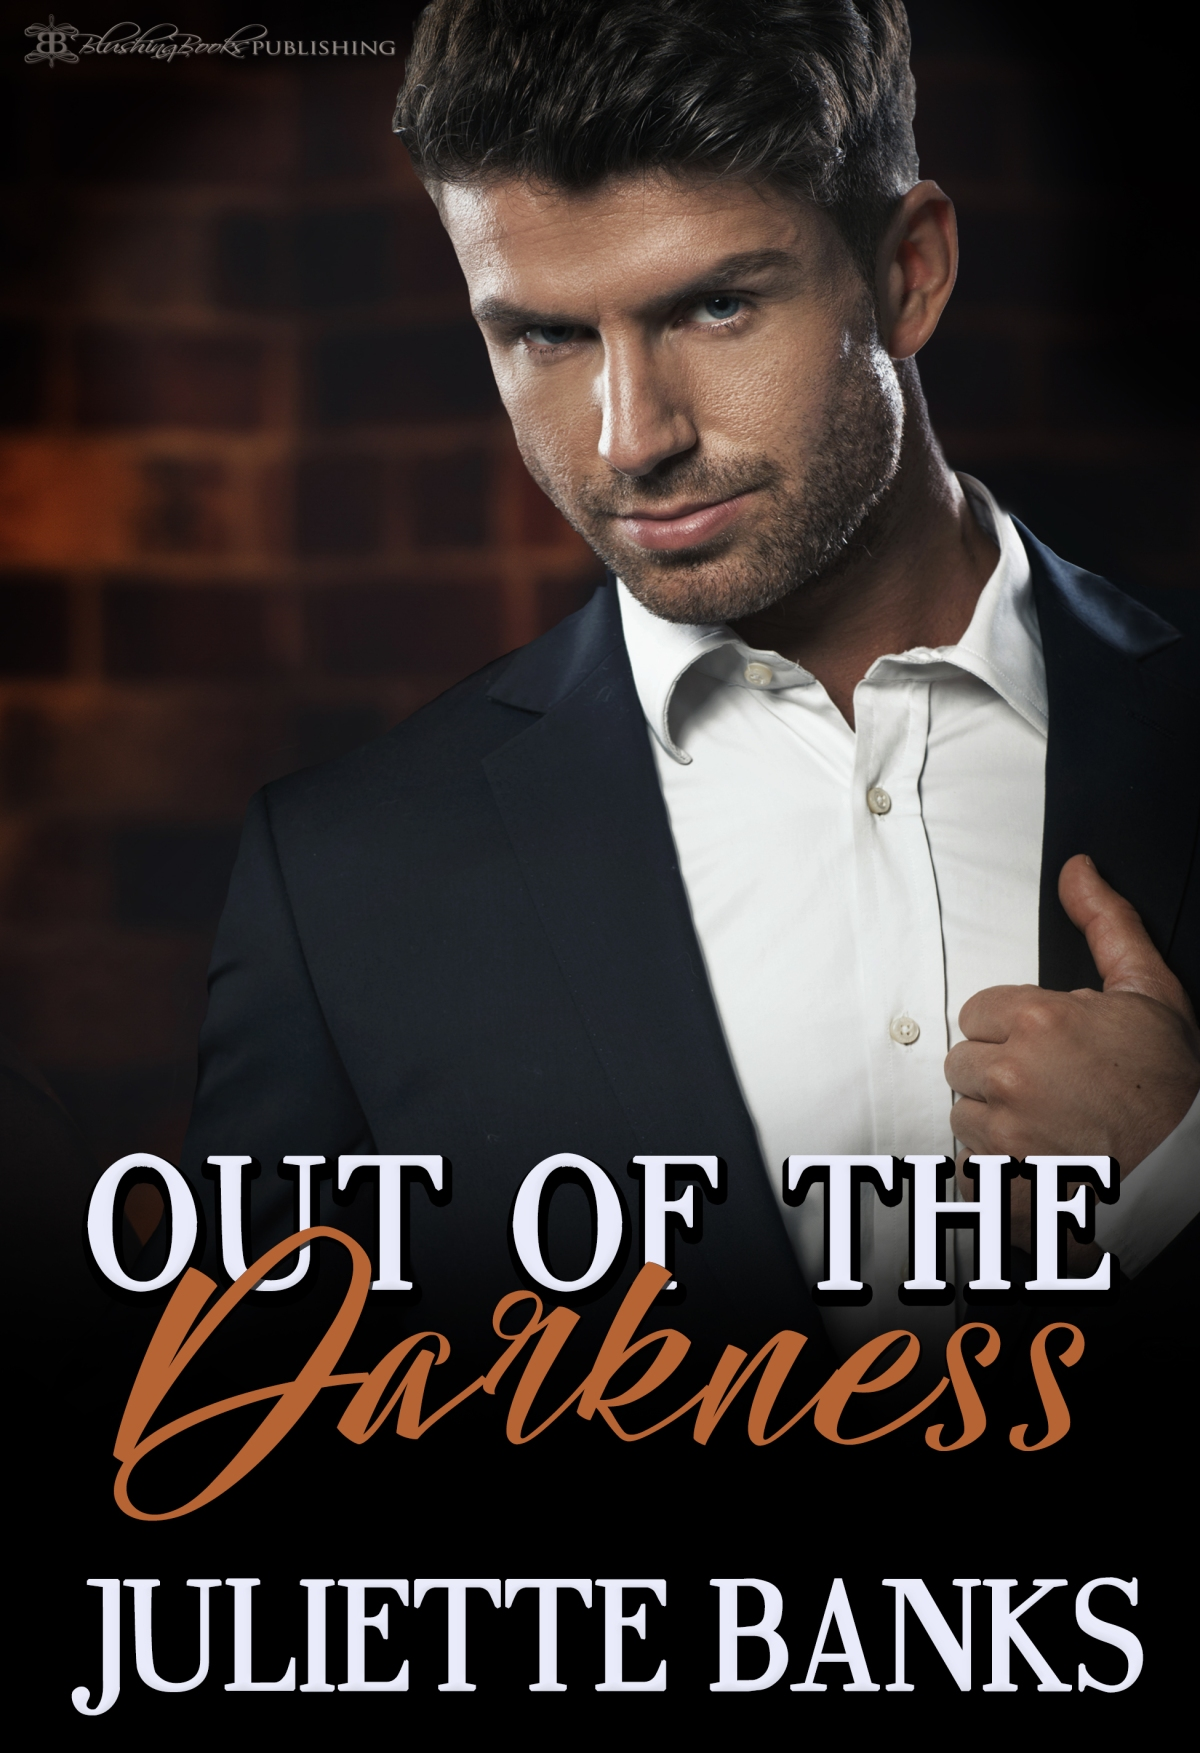 Out of theDarkness